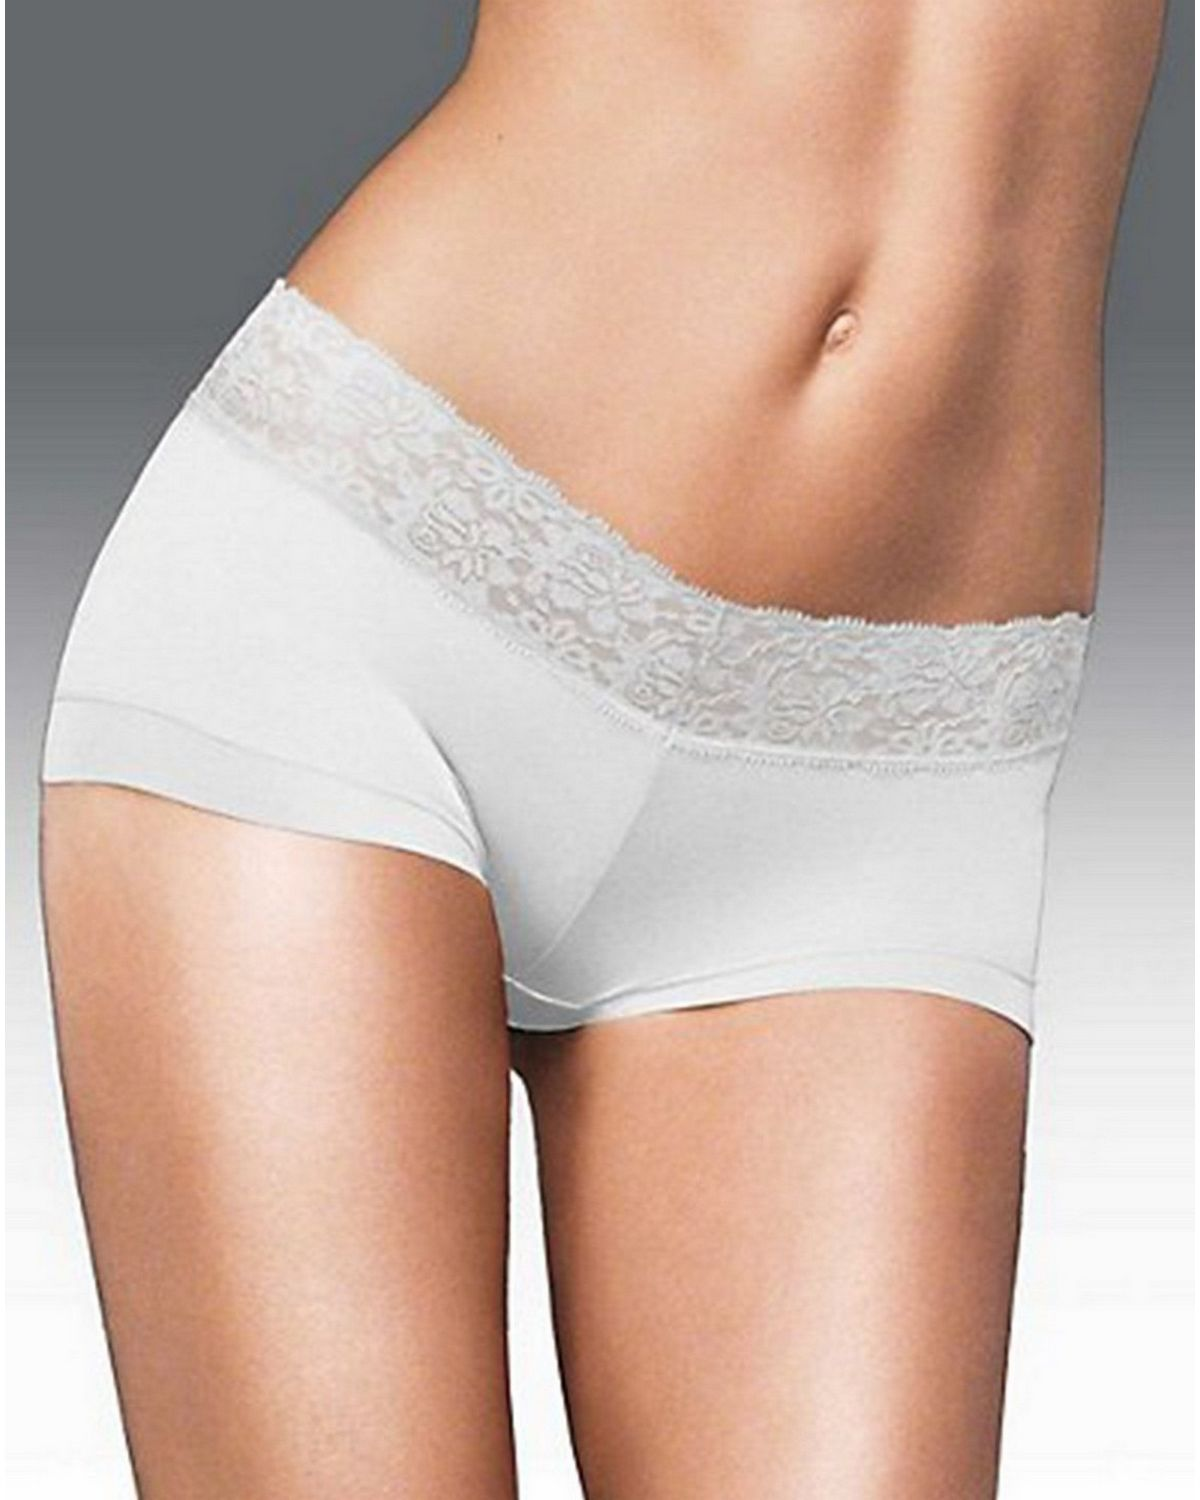 Maidenform 40859 Cotton Dream Boyshort with Lace - White - 5 40859